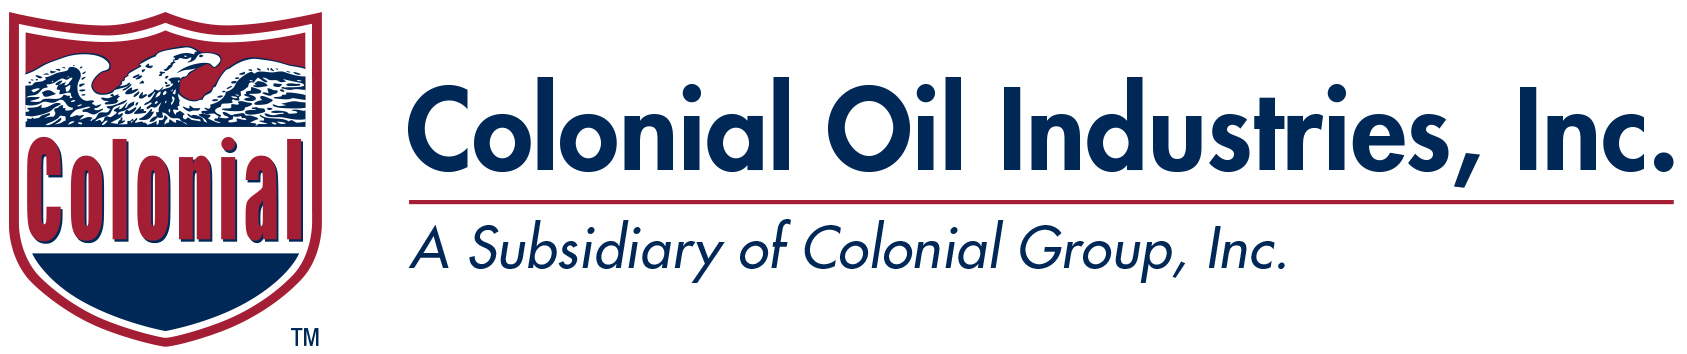 Colonial Oil